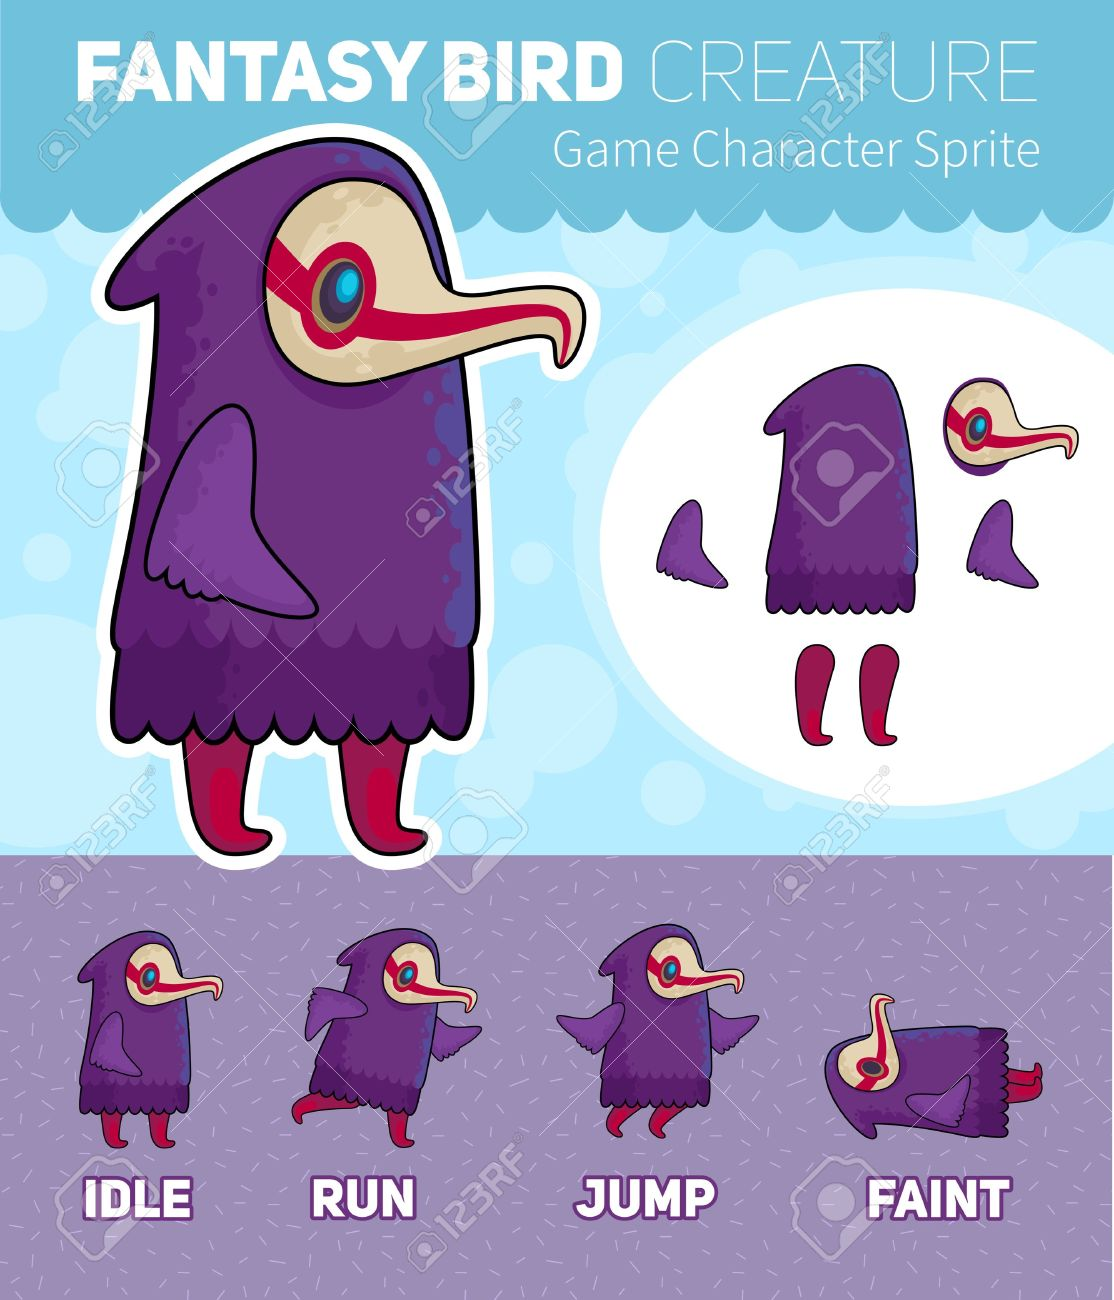 Fantasy Bird creature Game Character Sheet for side scrolling